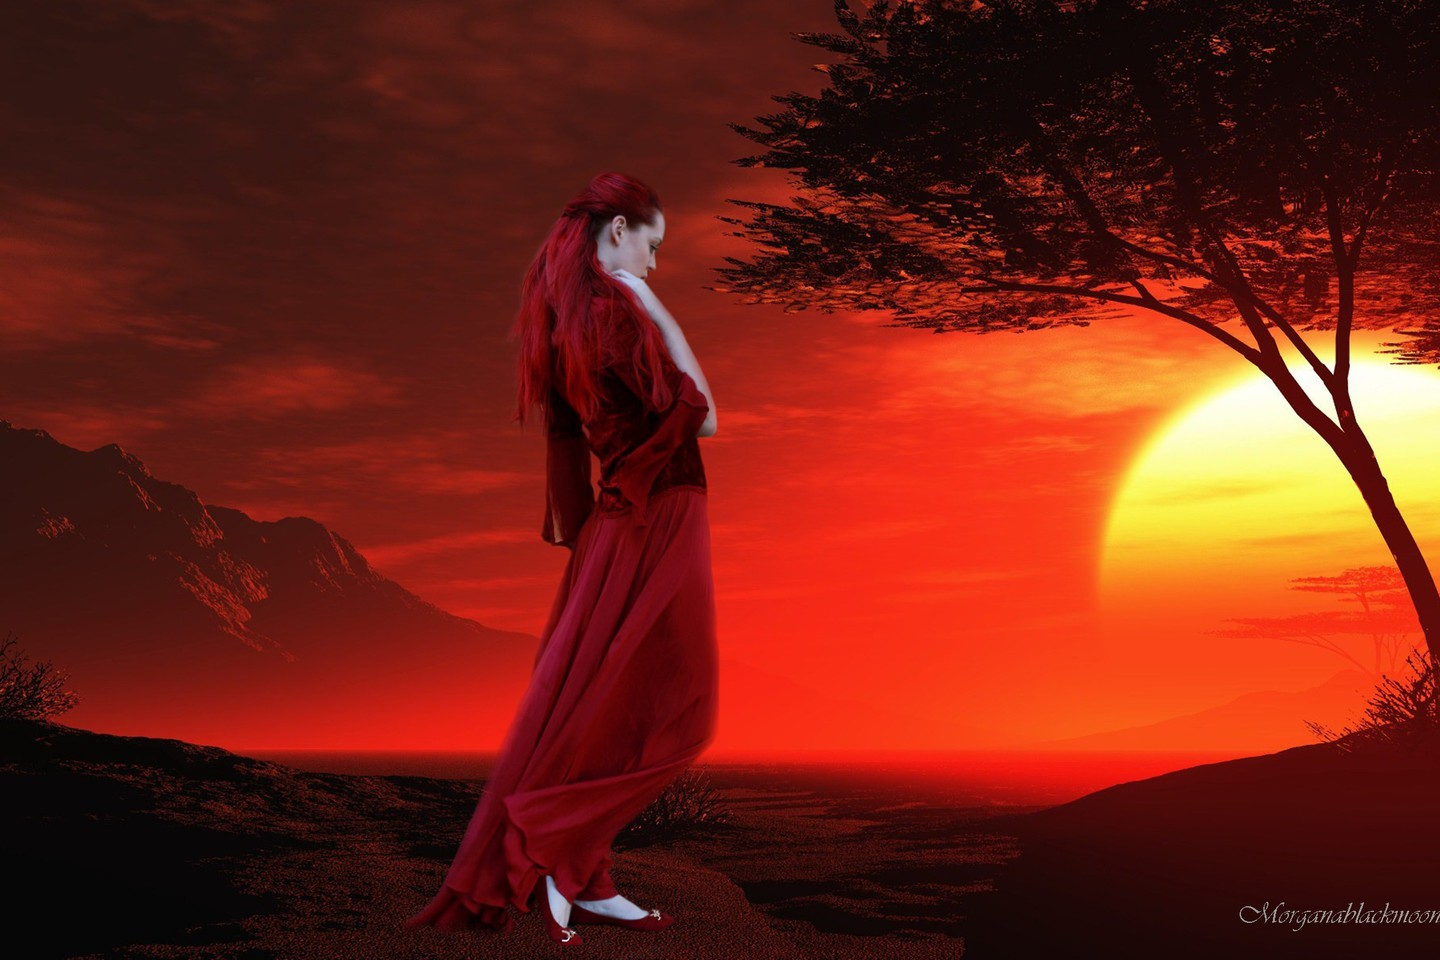 Emotion Hd Wallpapers: Emotional Red Wallpaper